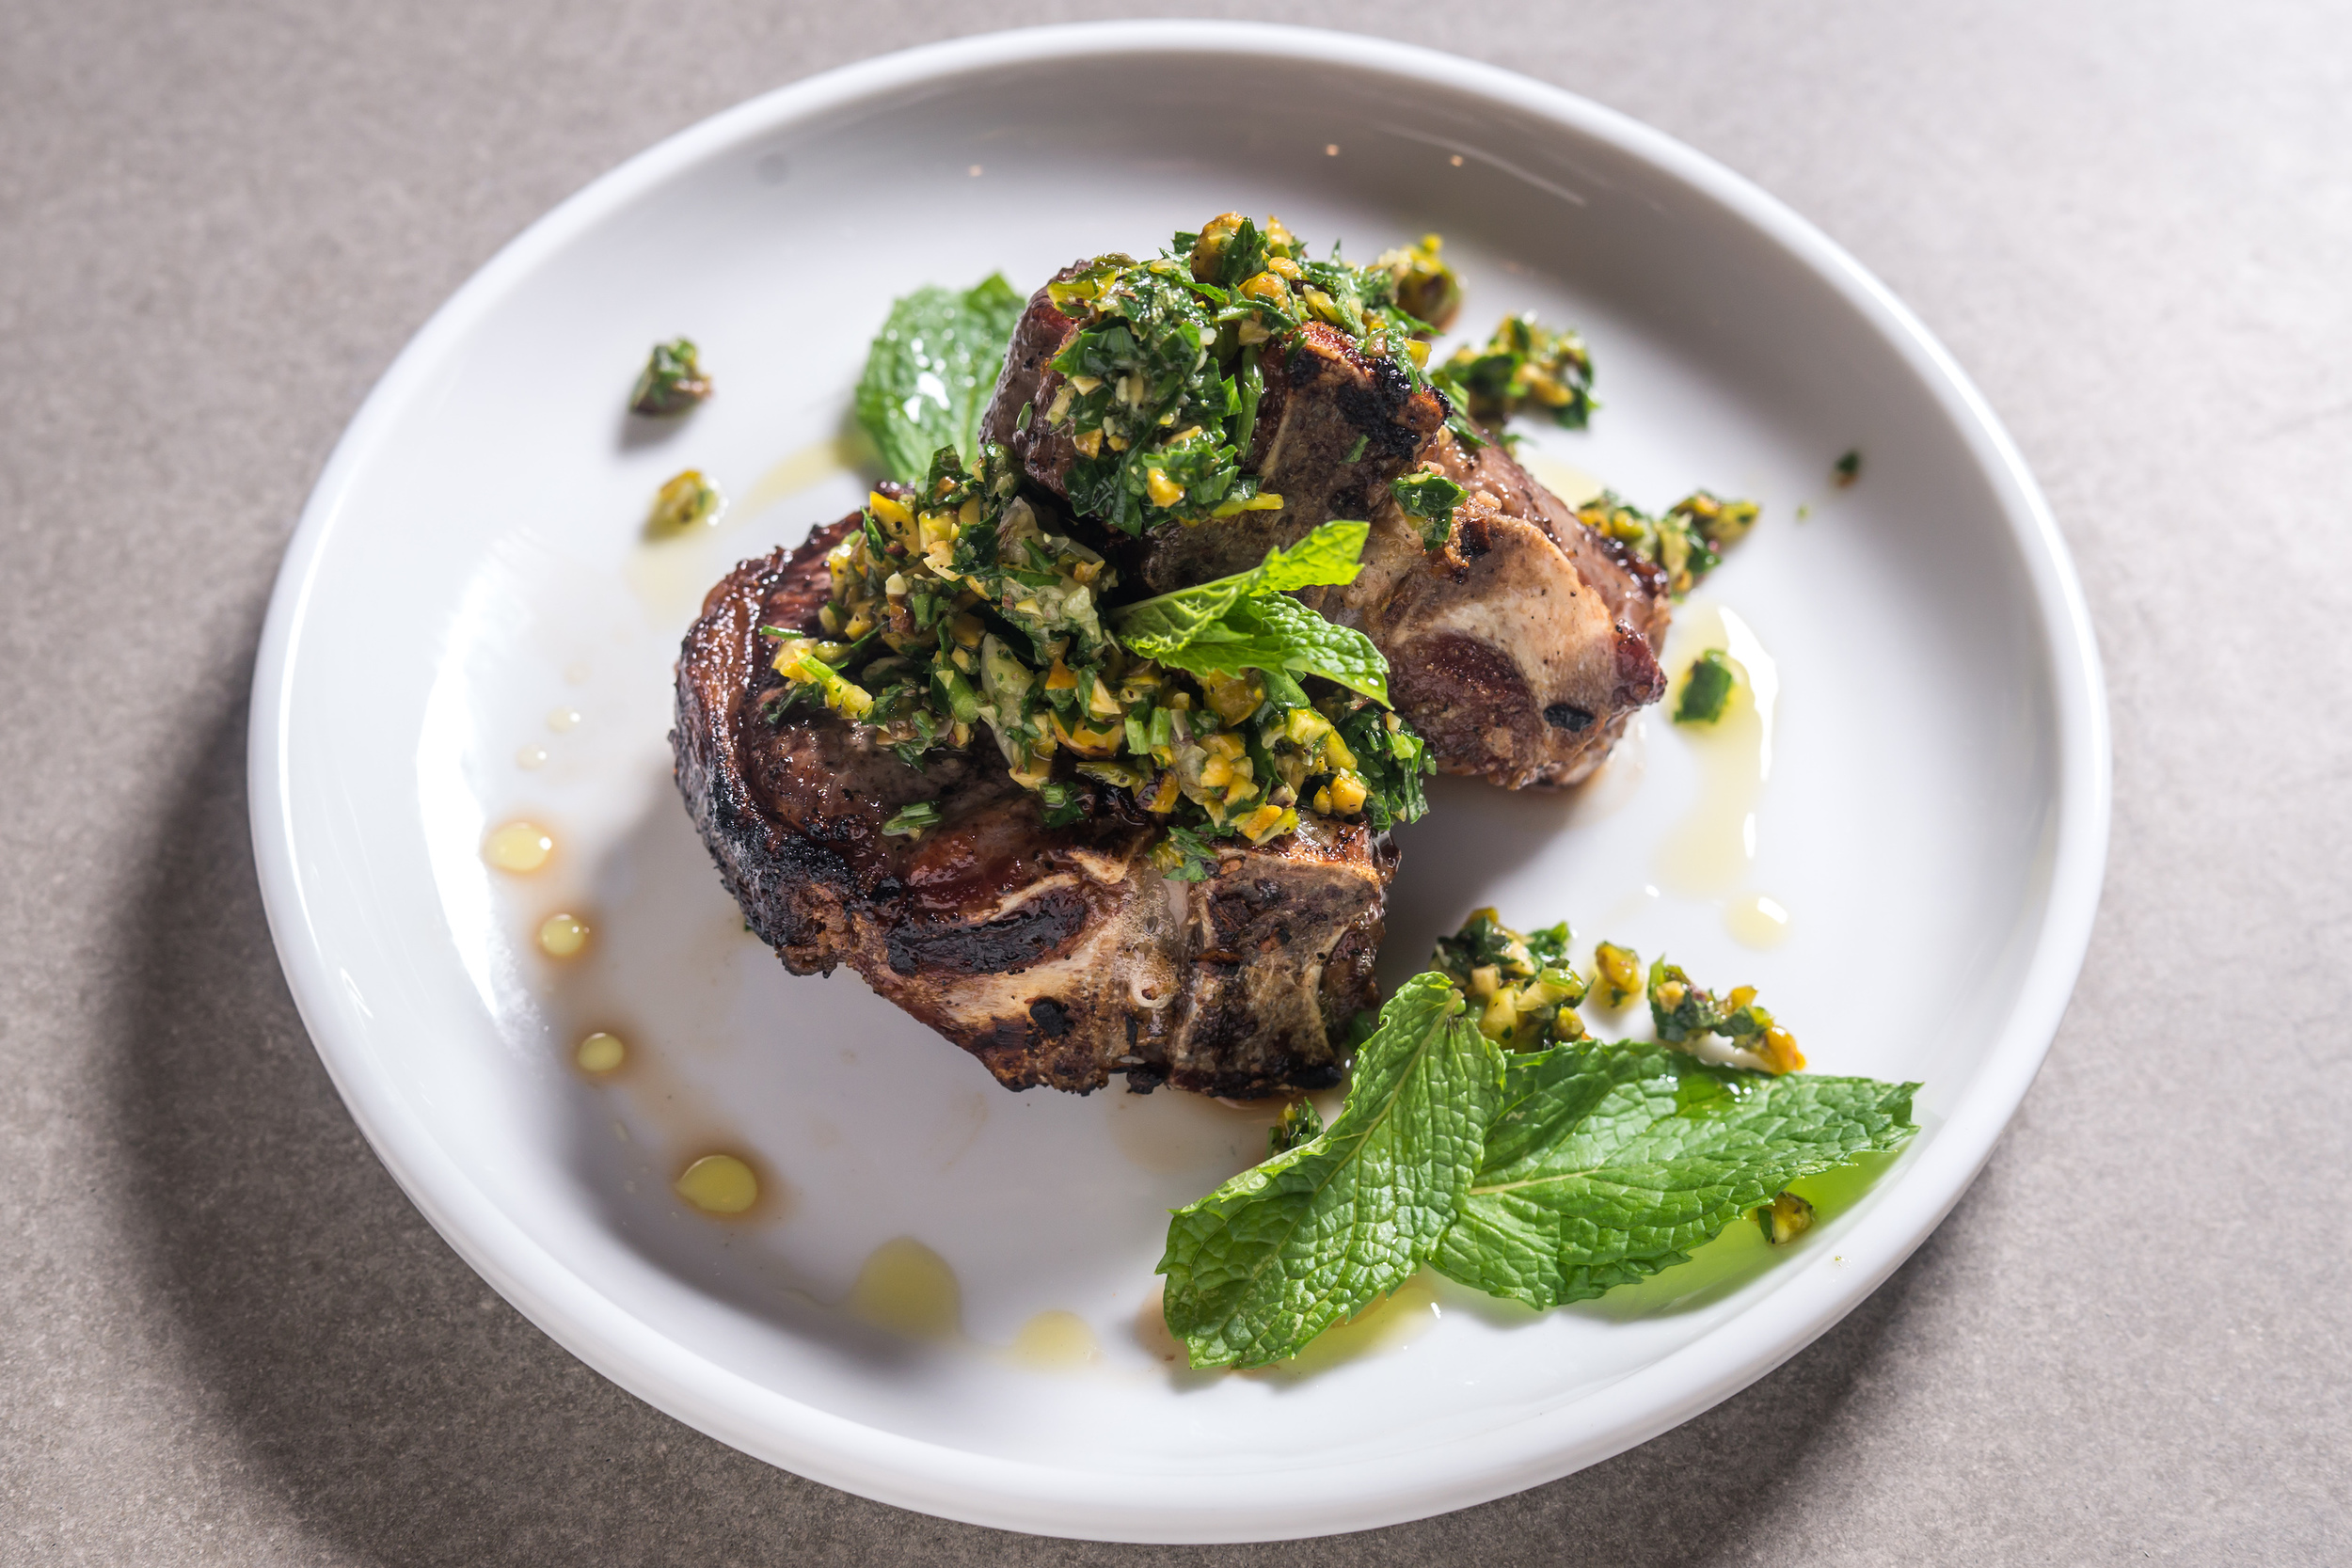 Grilled lamb chops with pistachio gremolata